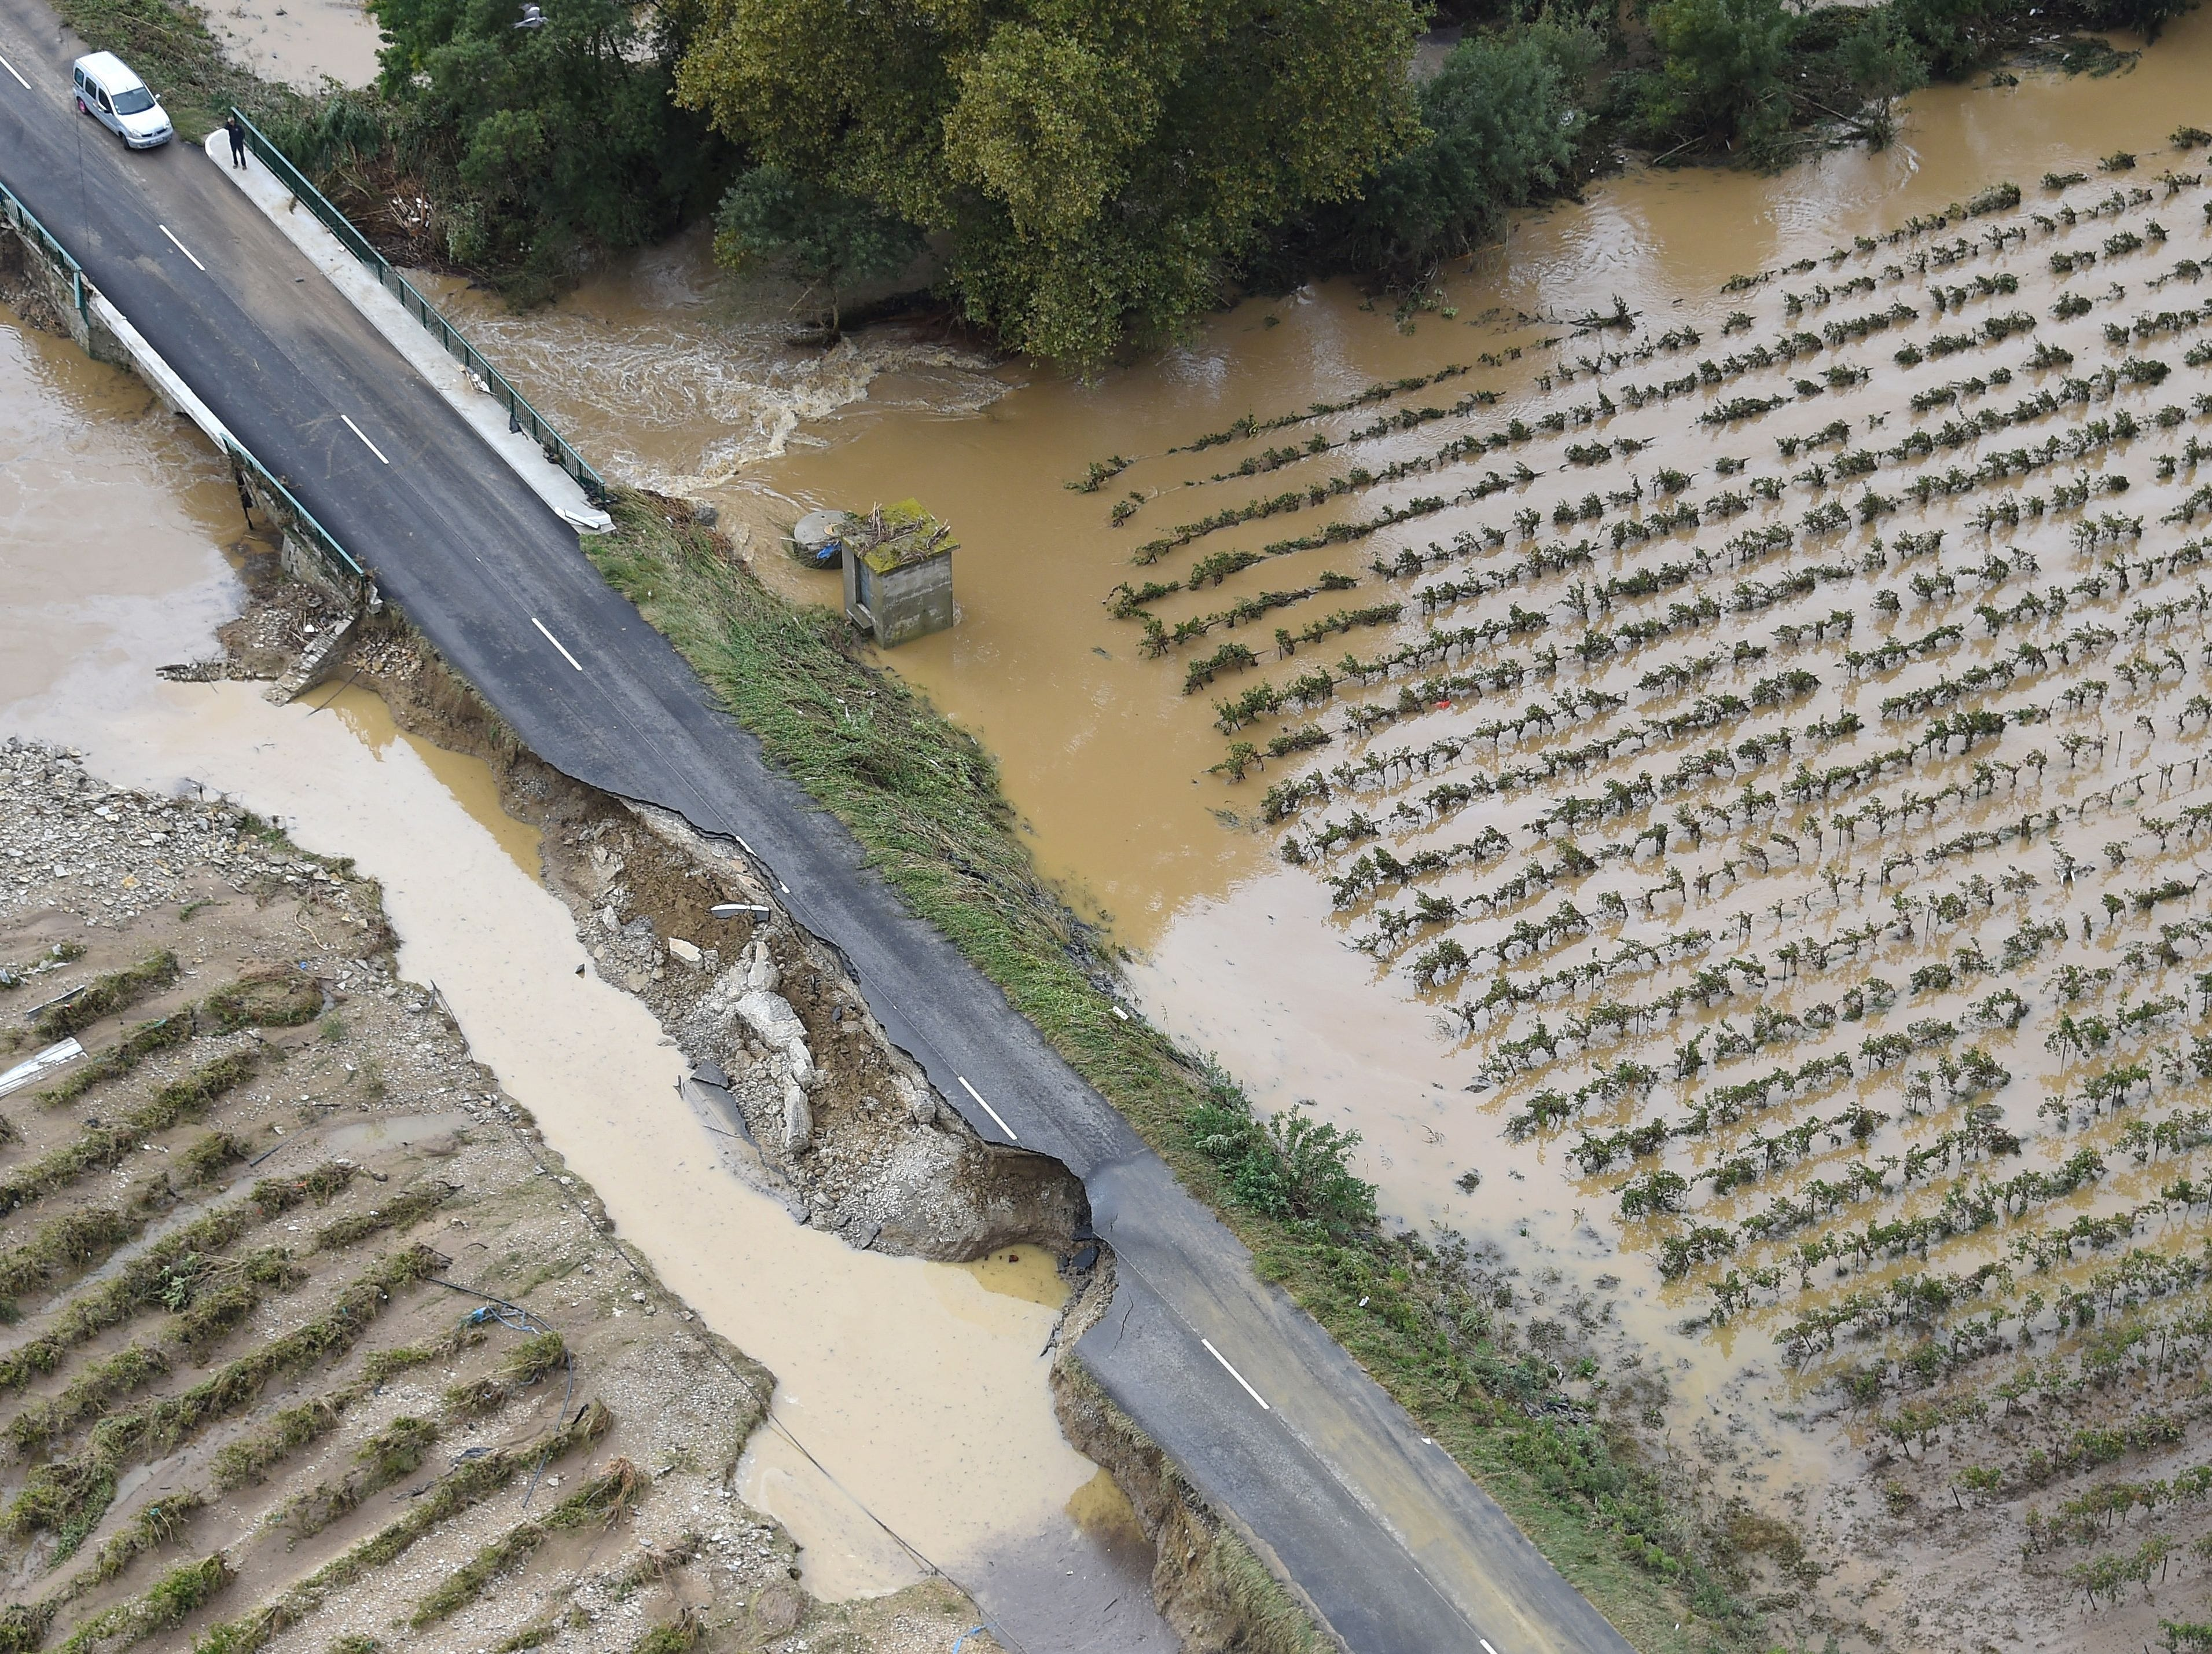 A road washed out October 15, 2018, near Carcassone in southern France. Thirteen people have died after severe storms caused flash flooding across wide stretches of southwest France overnight, the interior ministry's rescue service said.